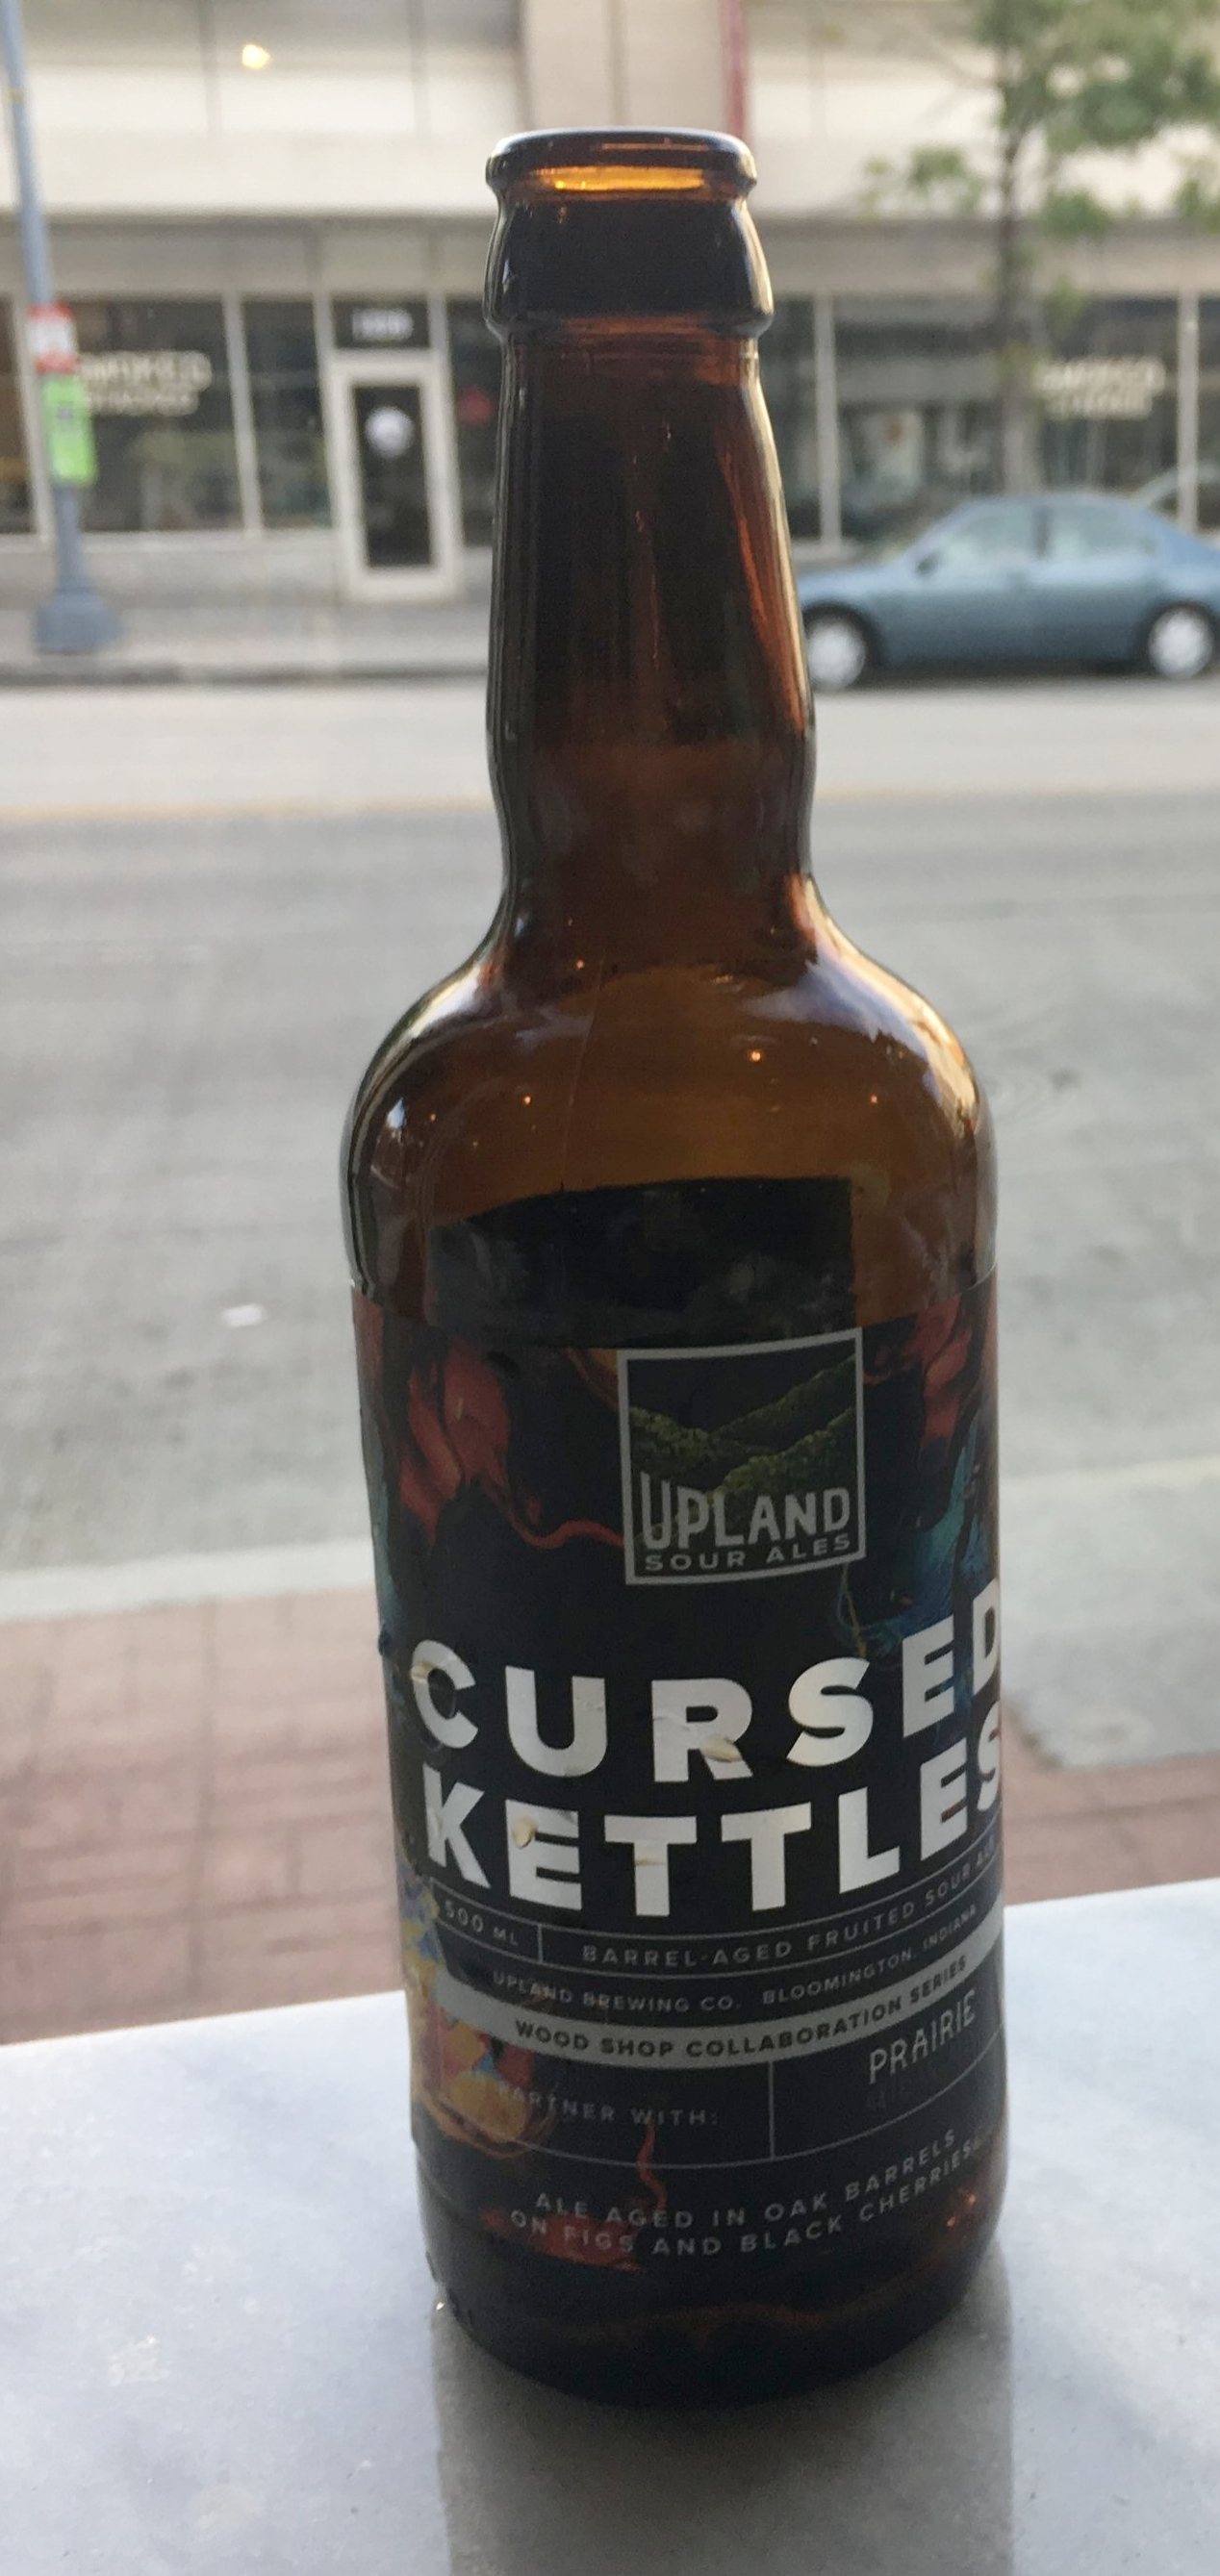 Cursed Kettles - Upland Brewing